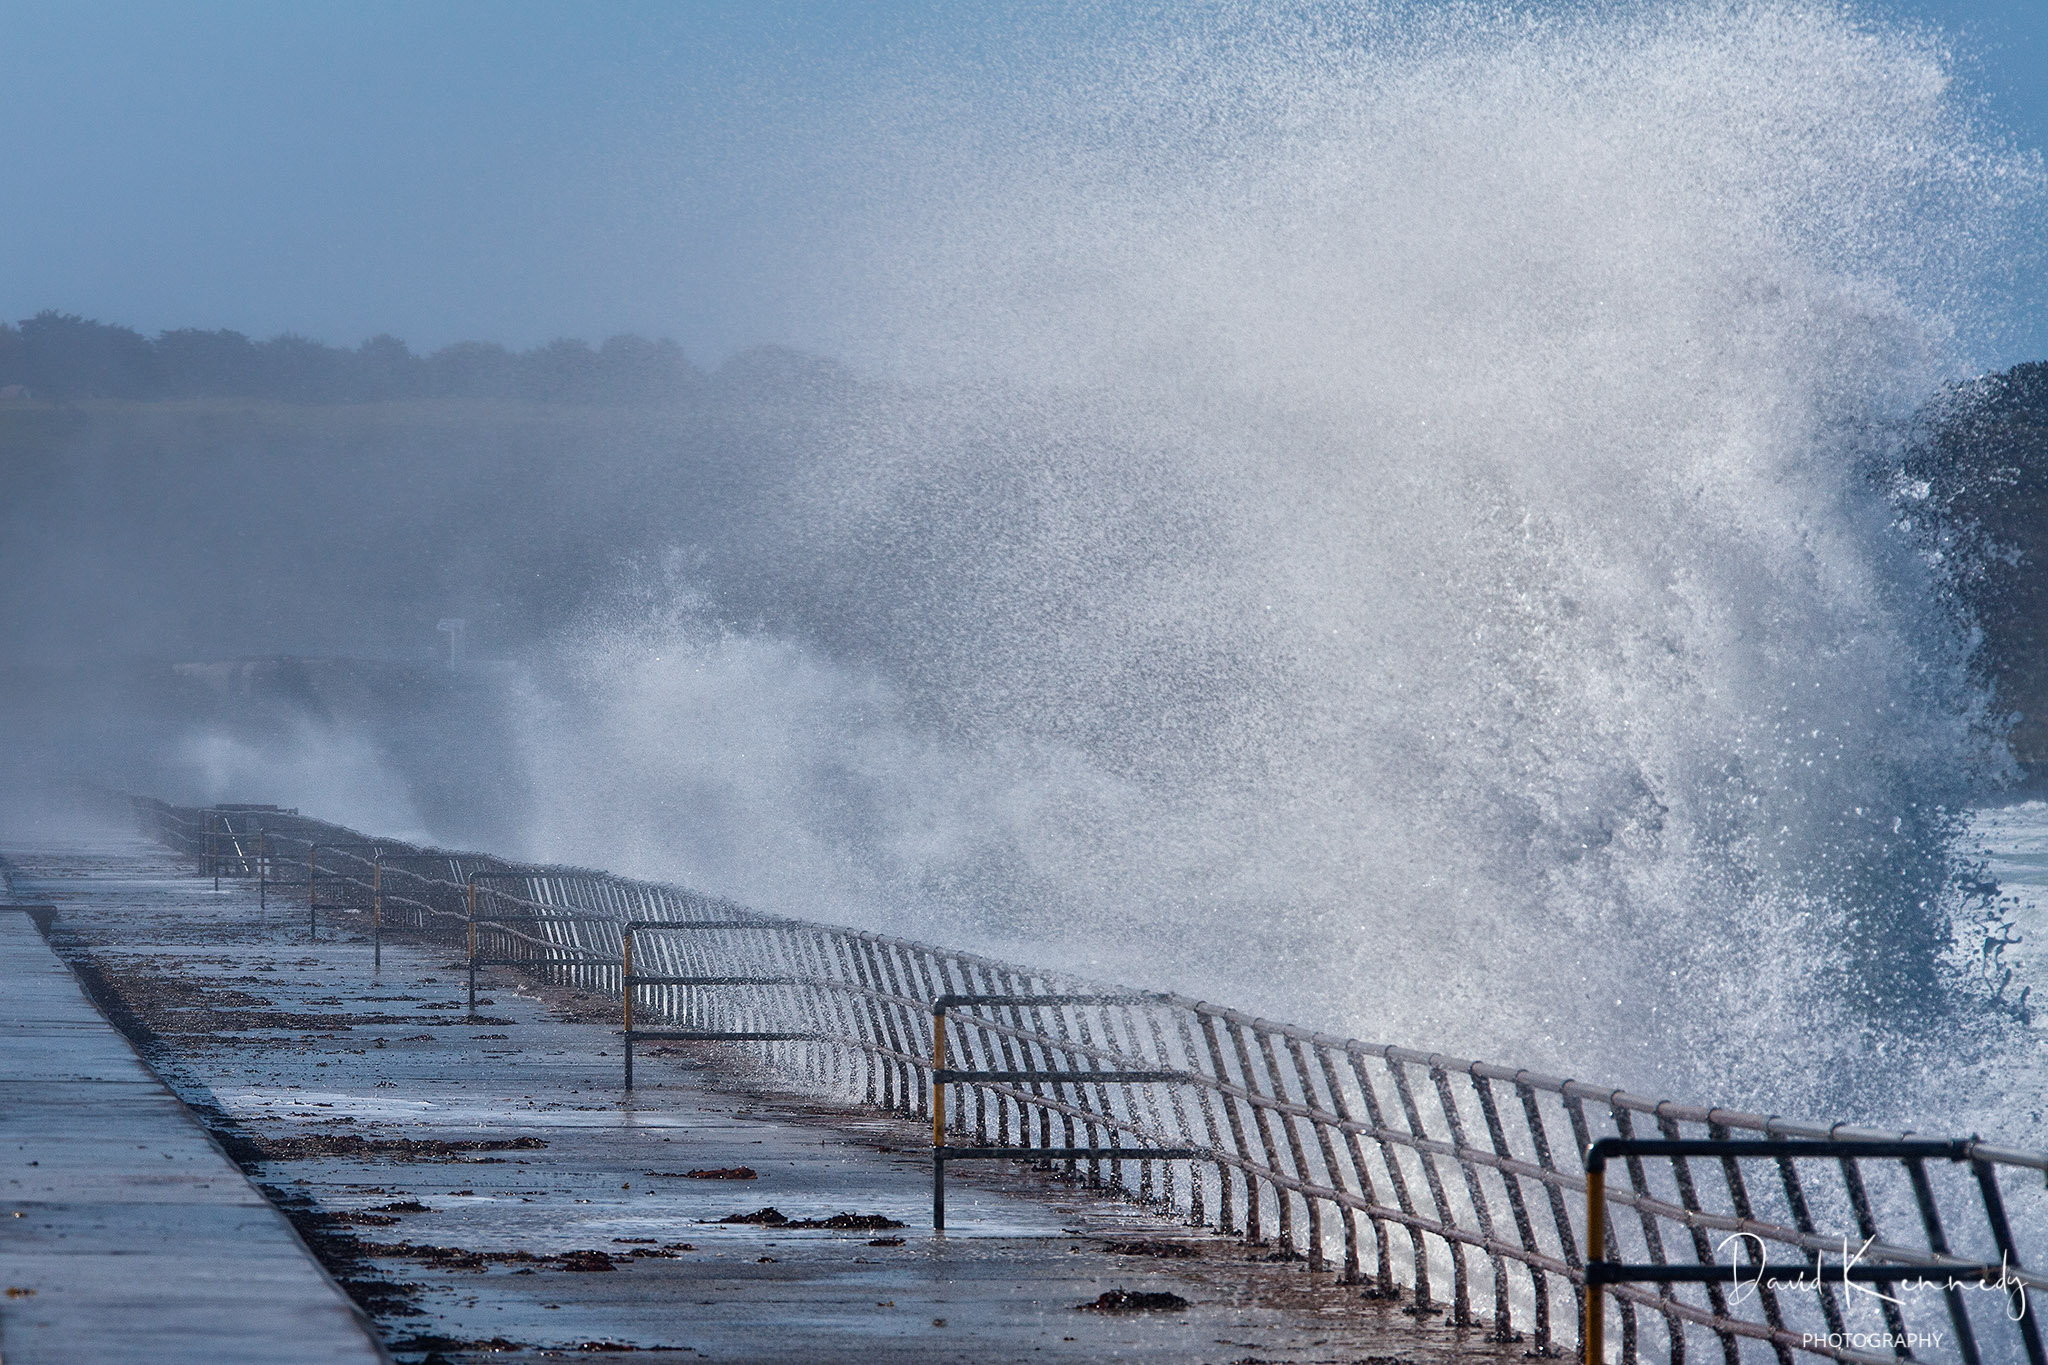 A wave breaking over the sea wall and spraying into the air over a barrier